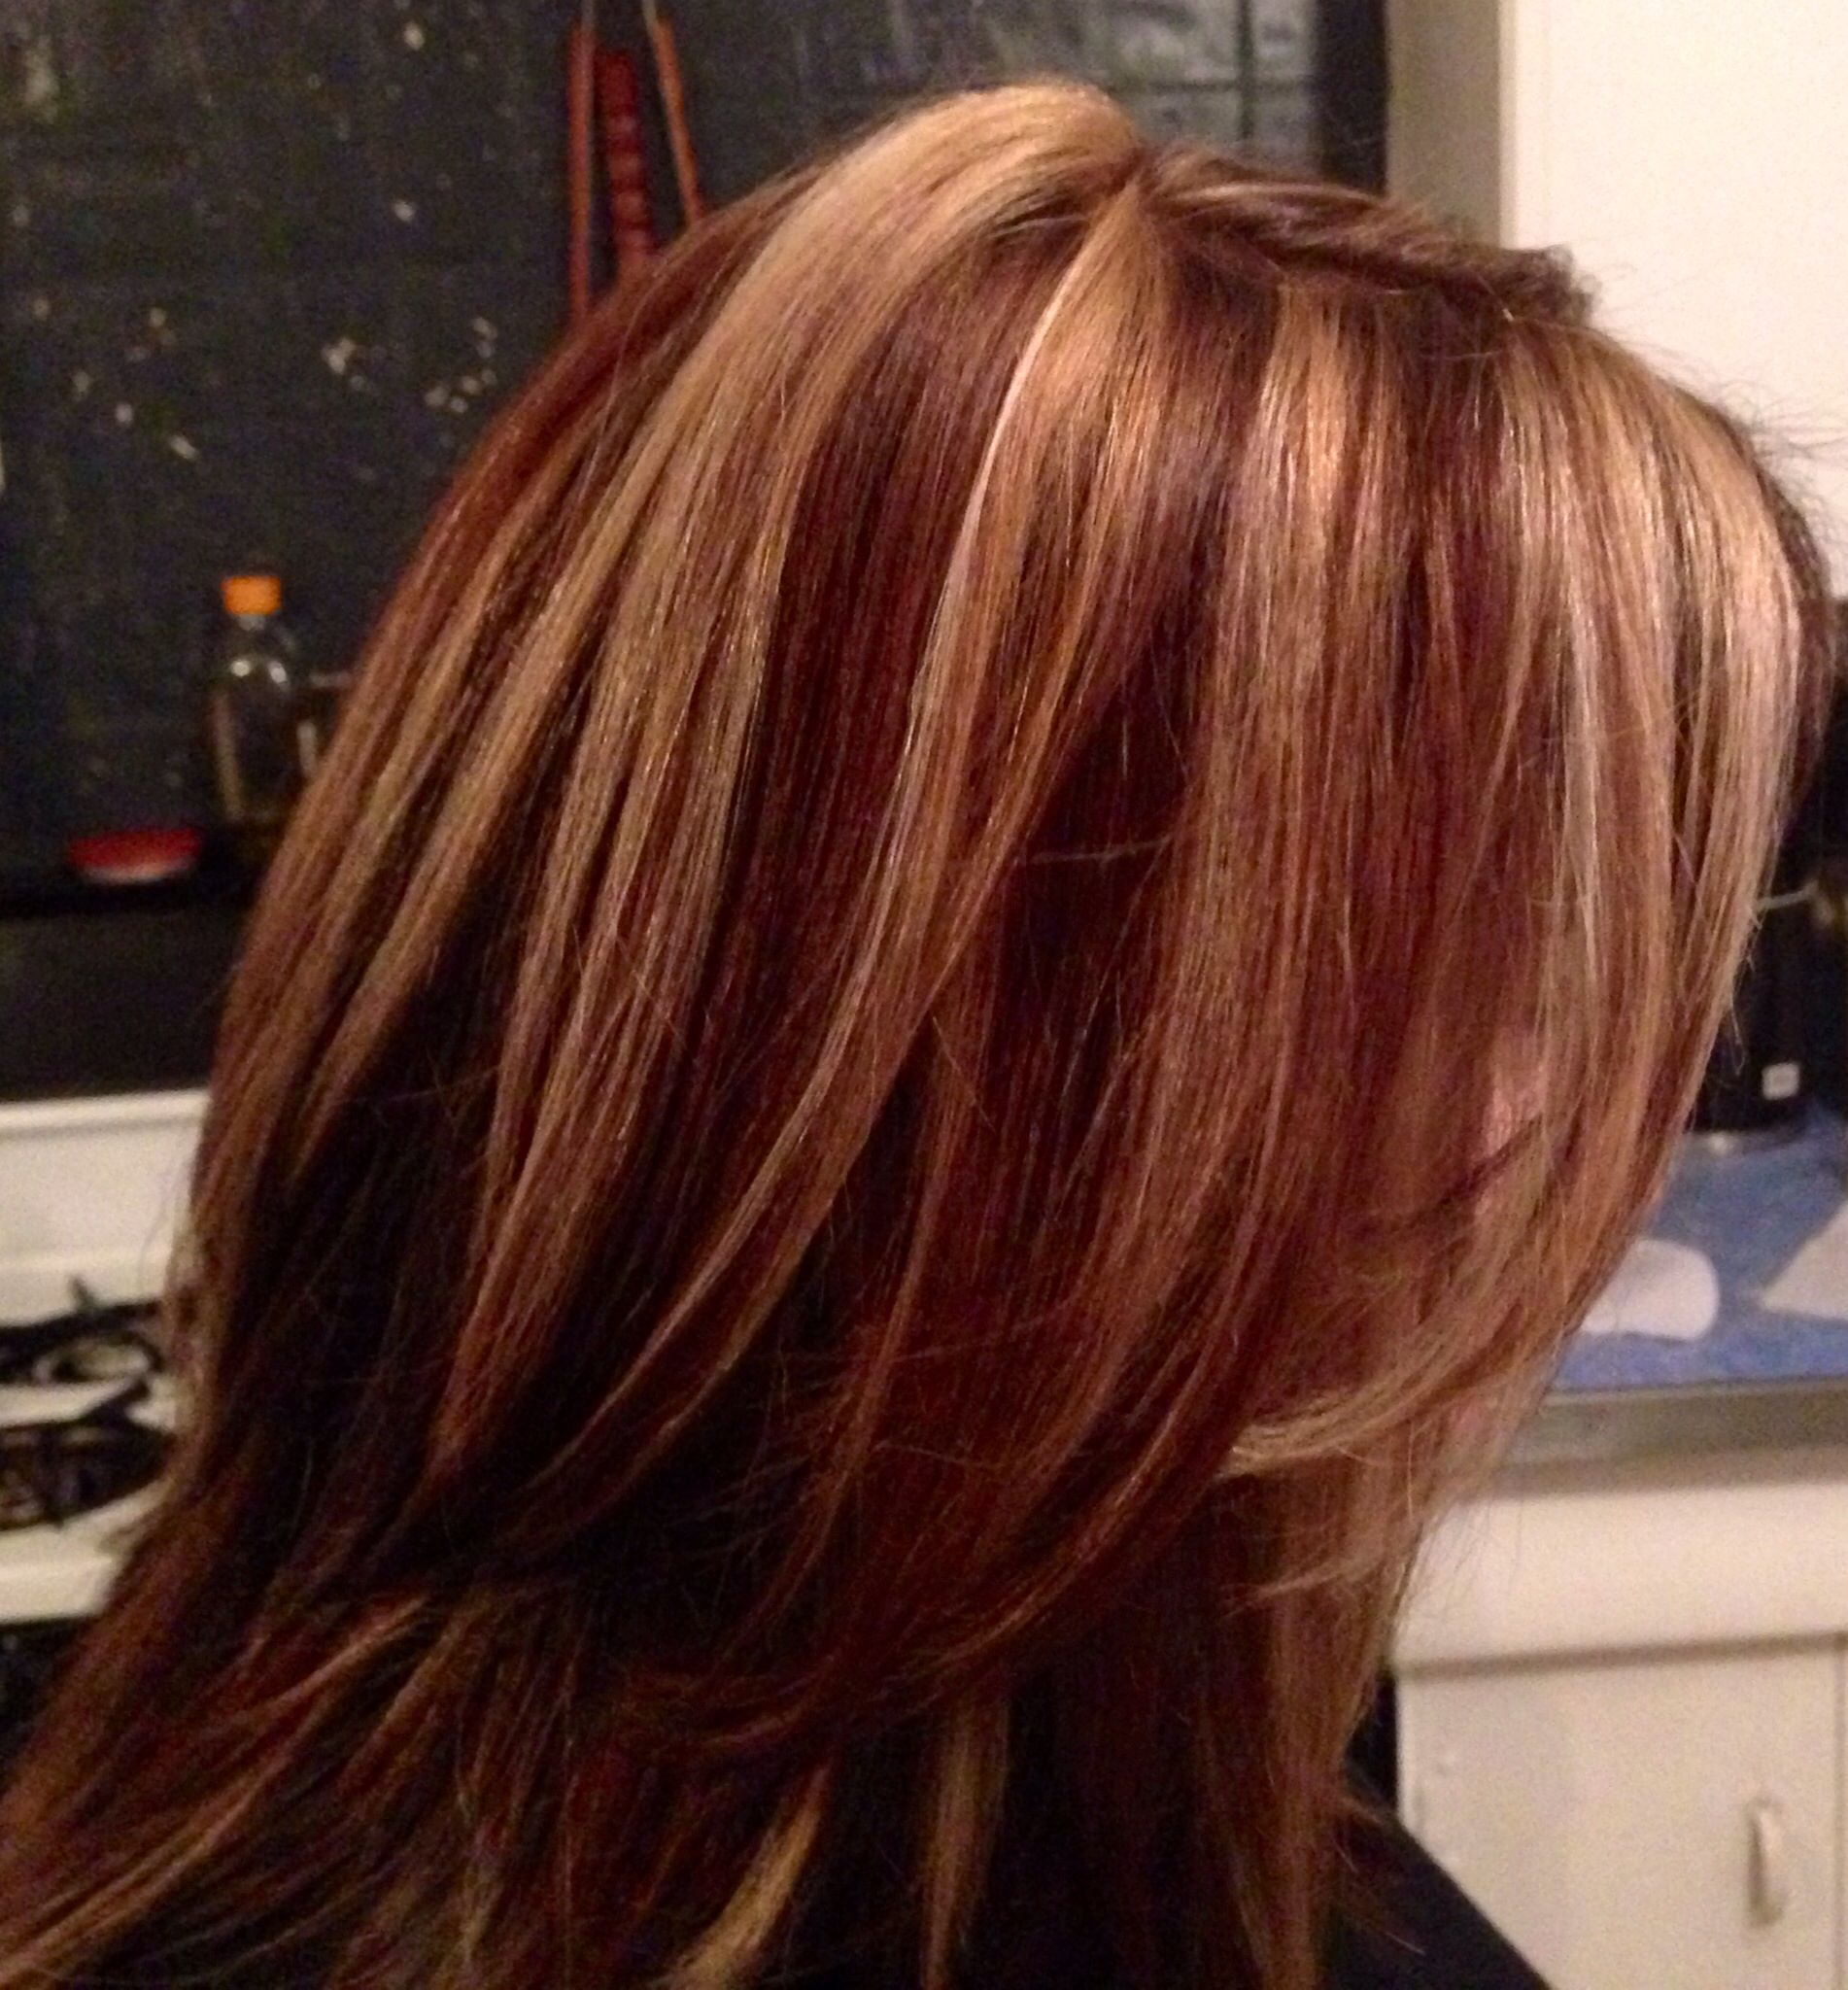 Golden brown with honey highlights | HaiR ideas!? | Pinterest